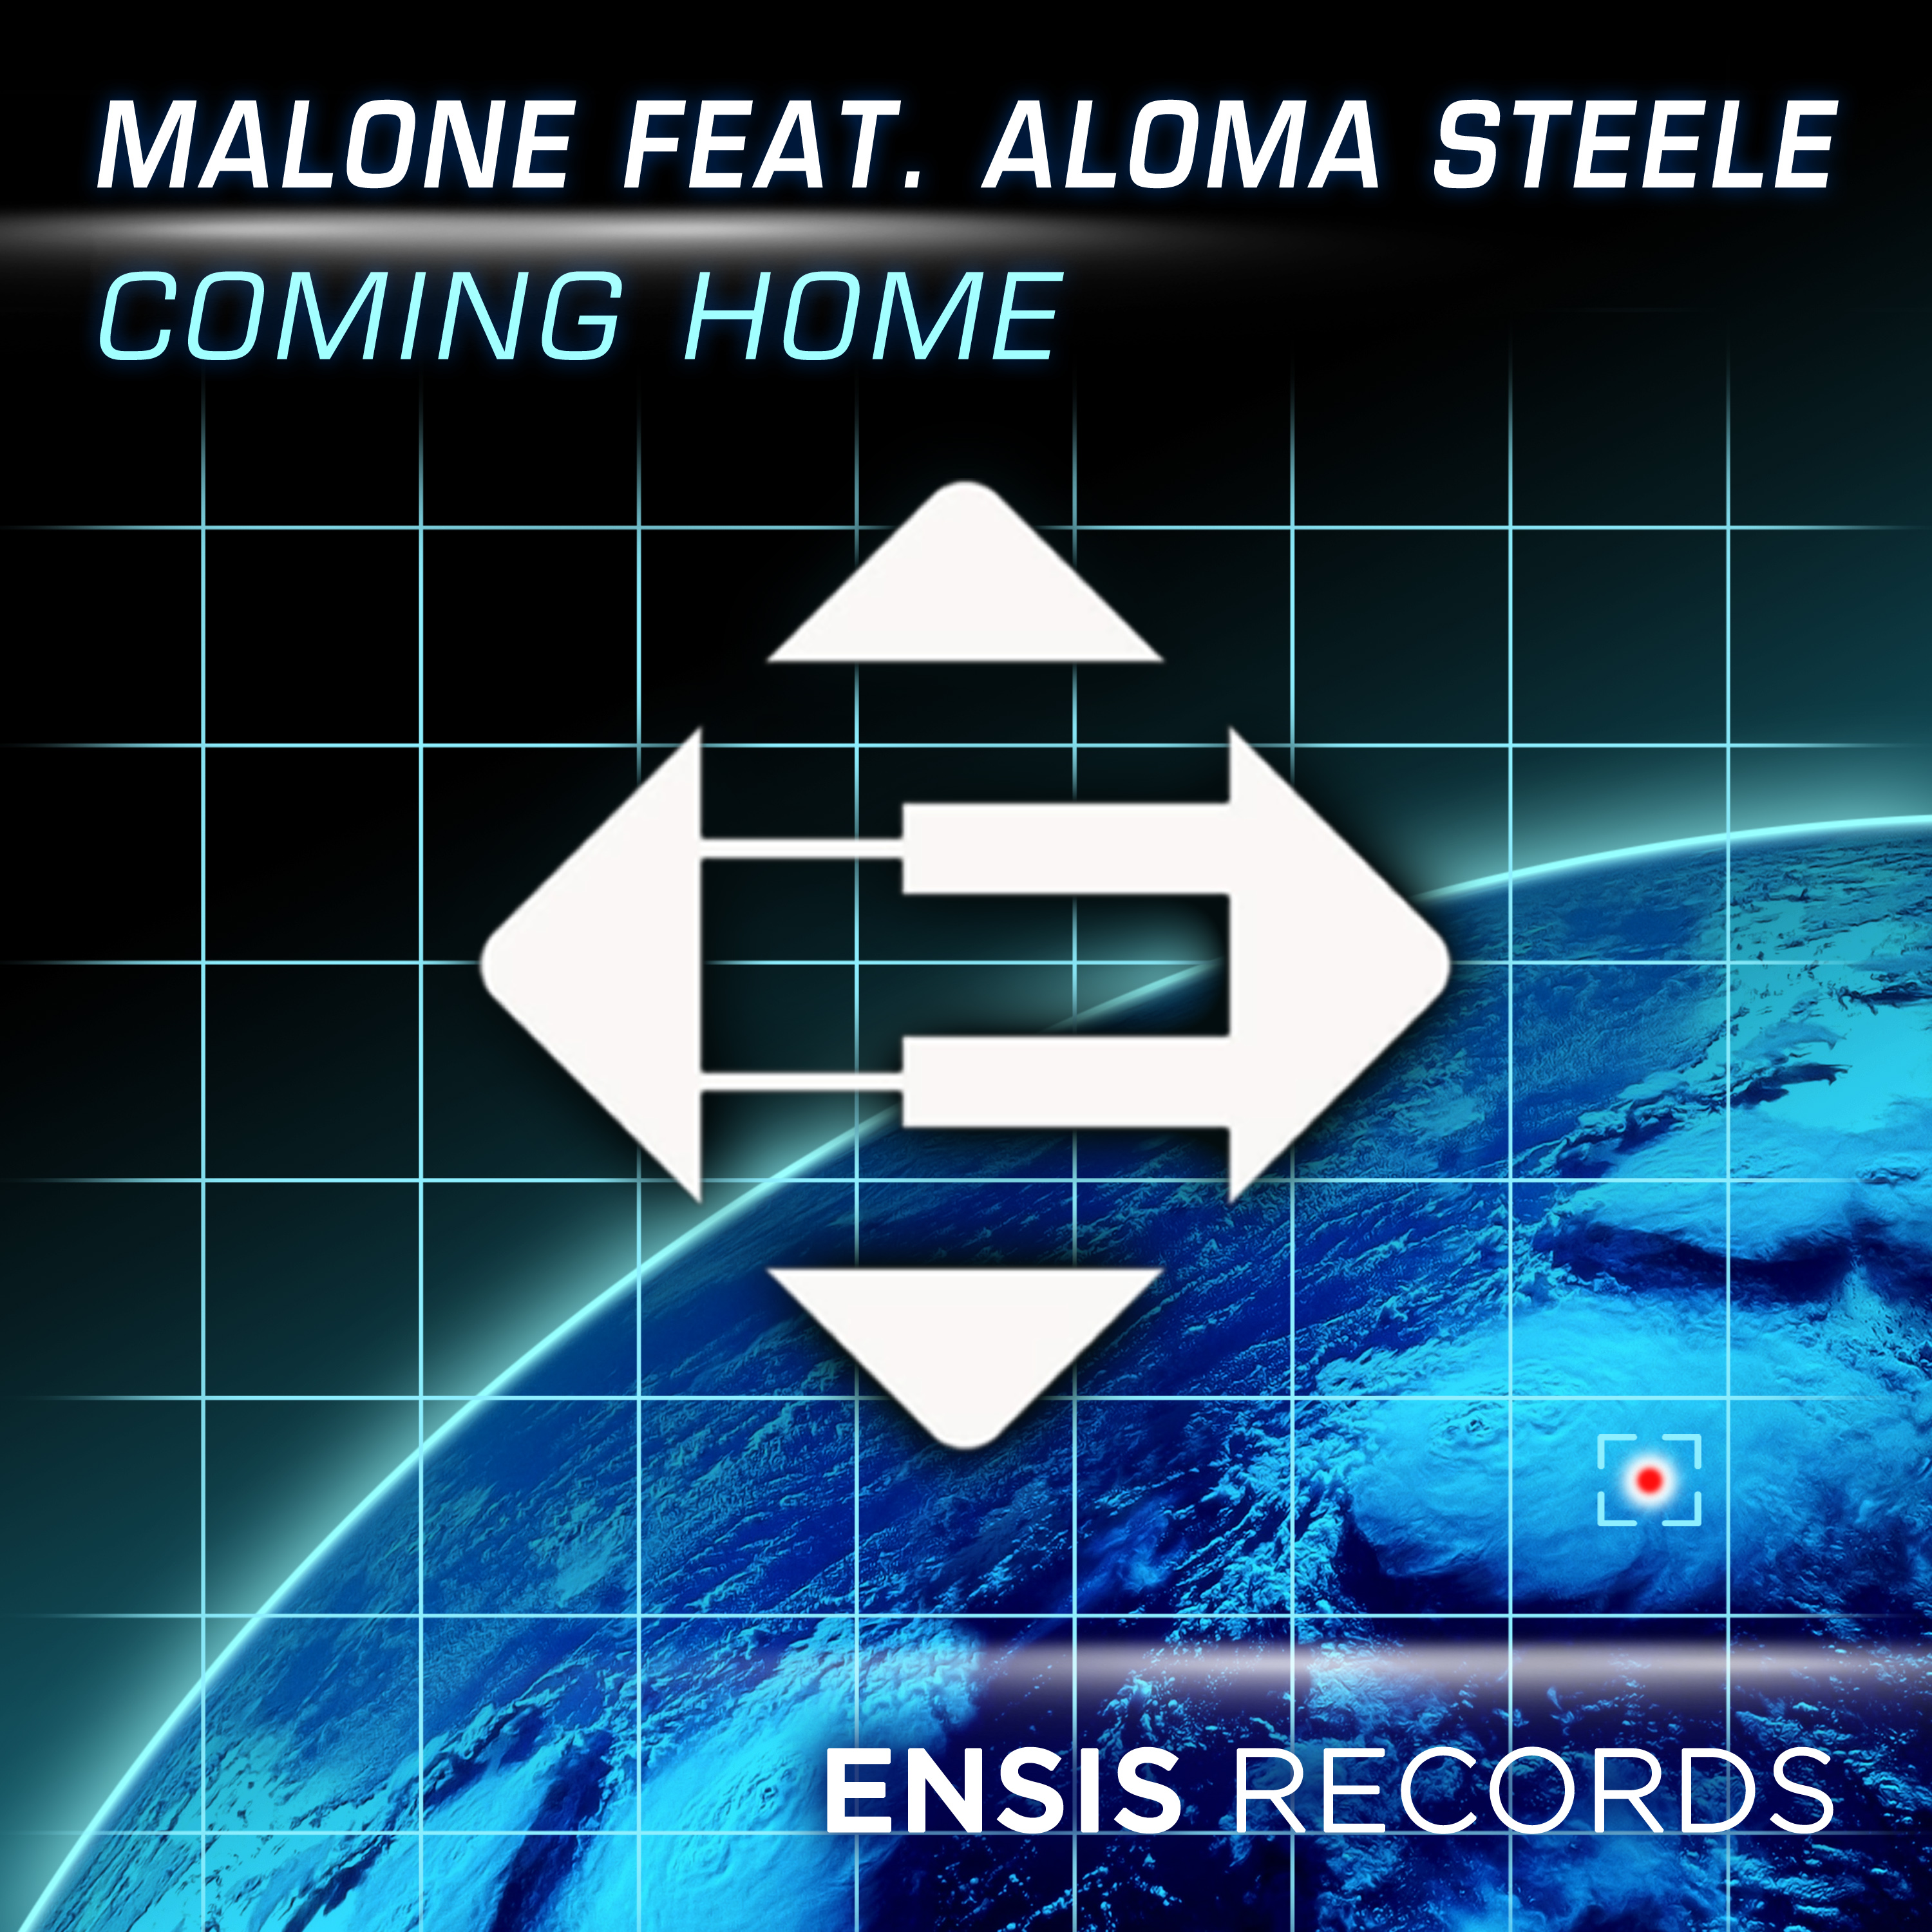 malone_feat._aloma_steele_-_coming_home.jpg